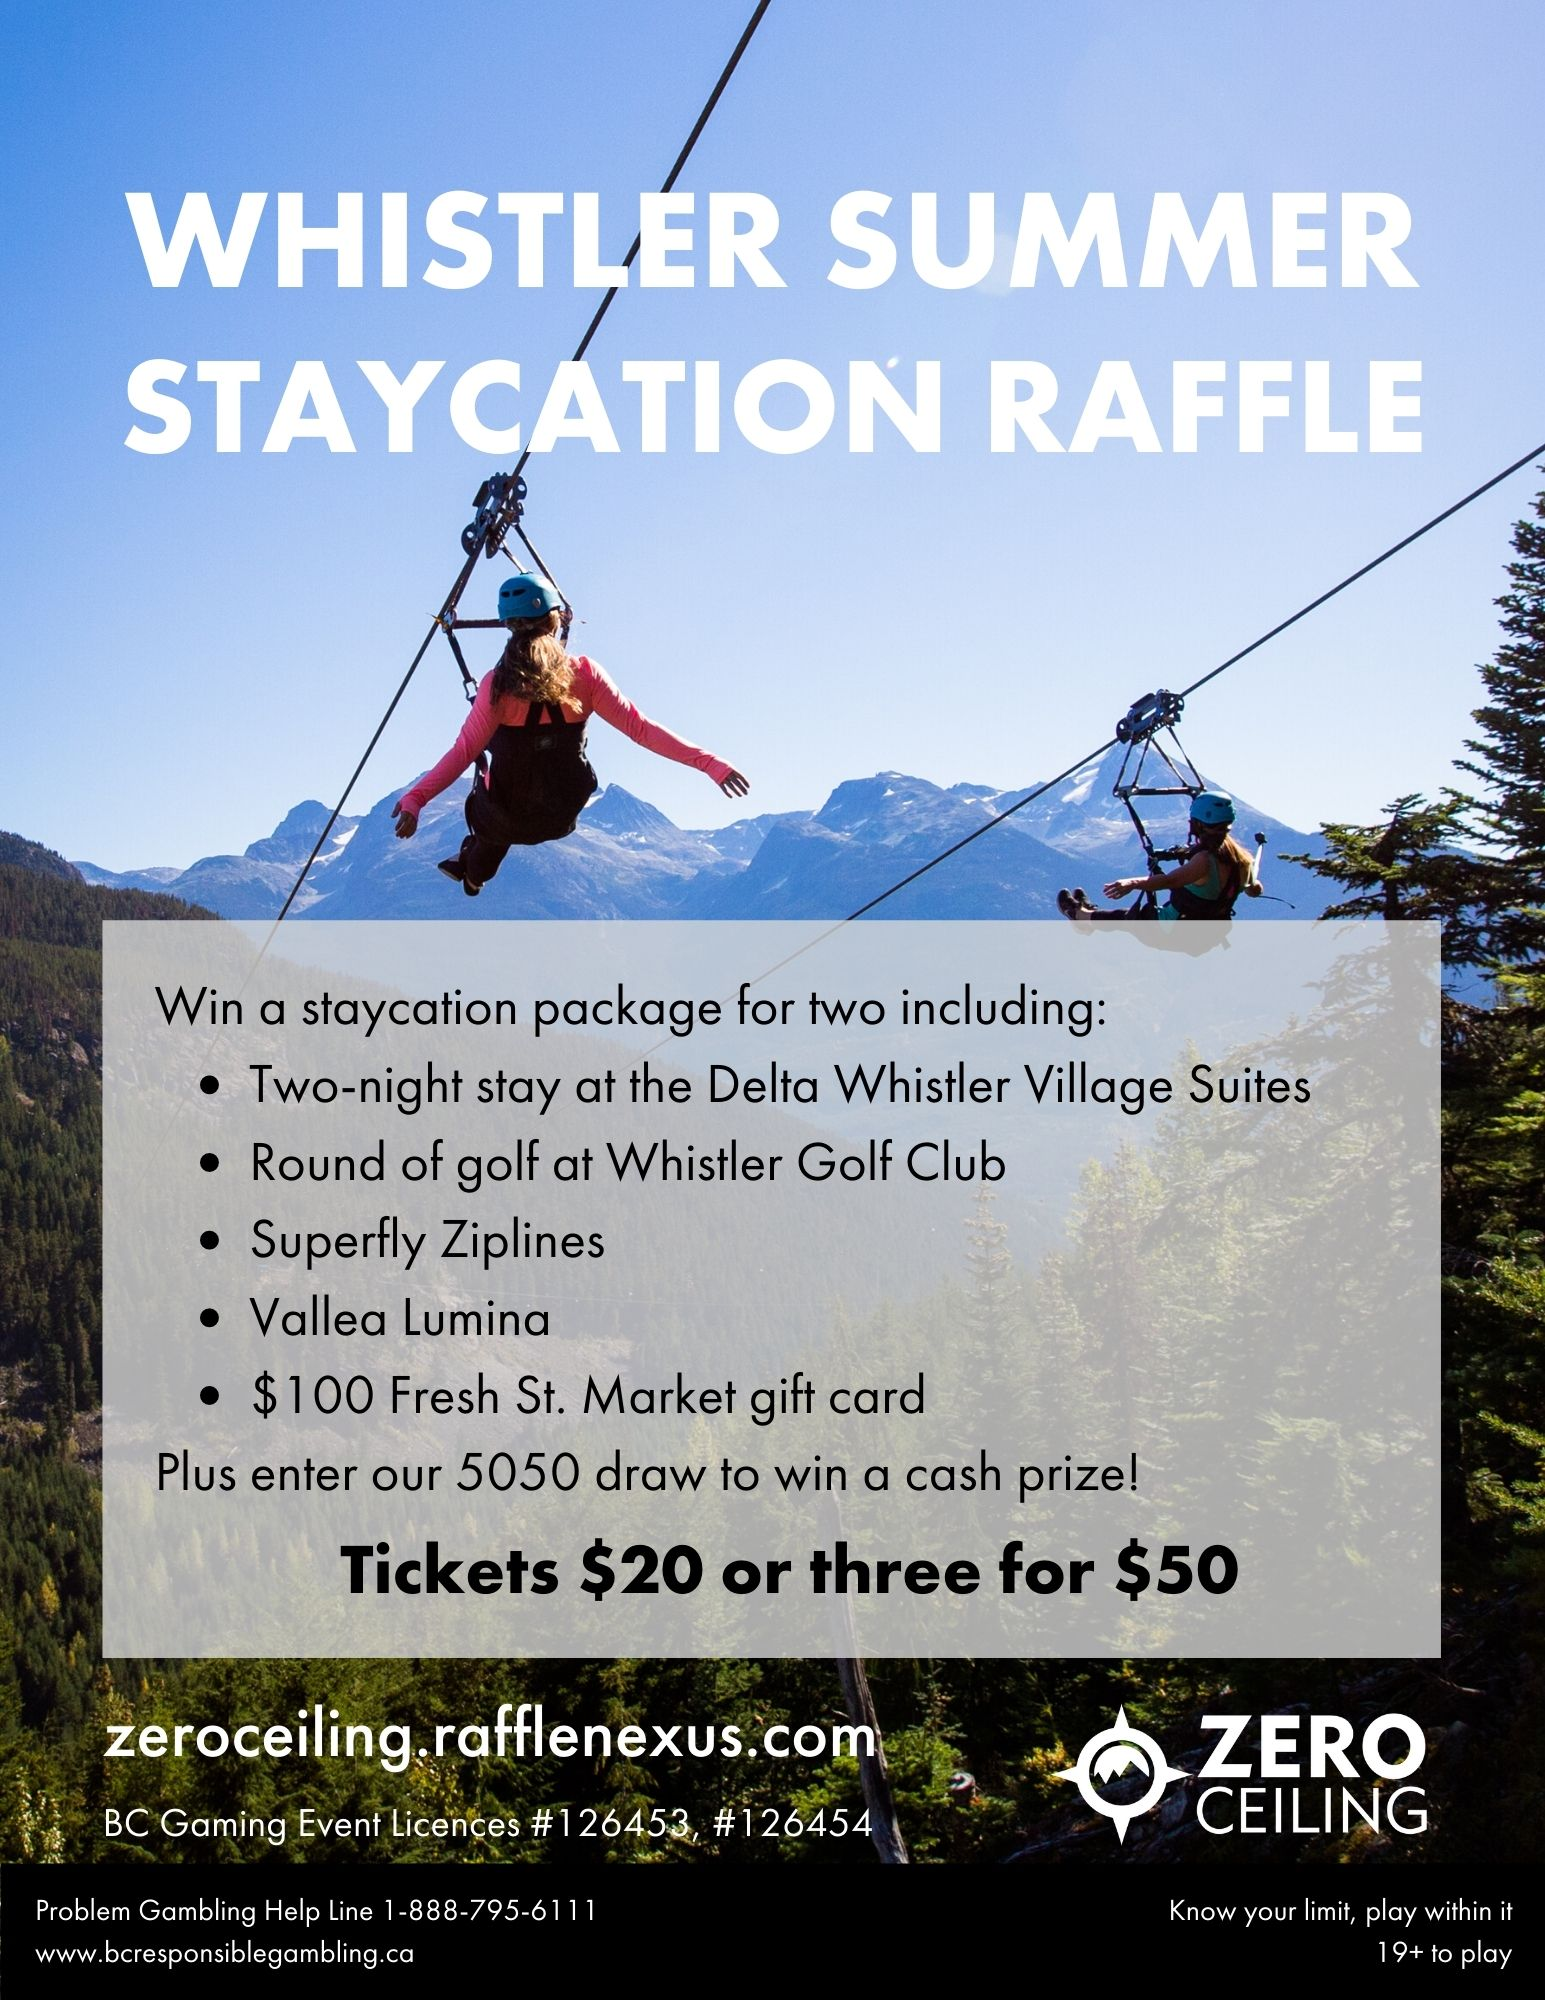 This is the poster for our raffle promotion. it shows two people having a lot of fun in Whistler, which you can too if you enter to win a stay in Whistler!